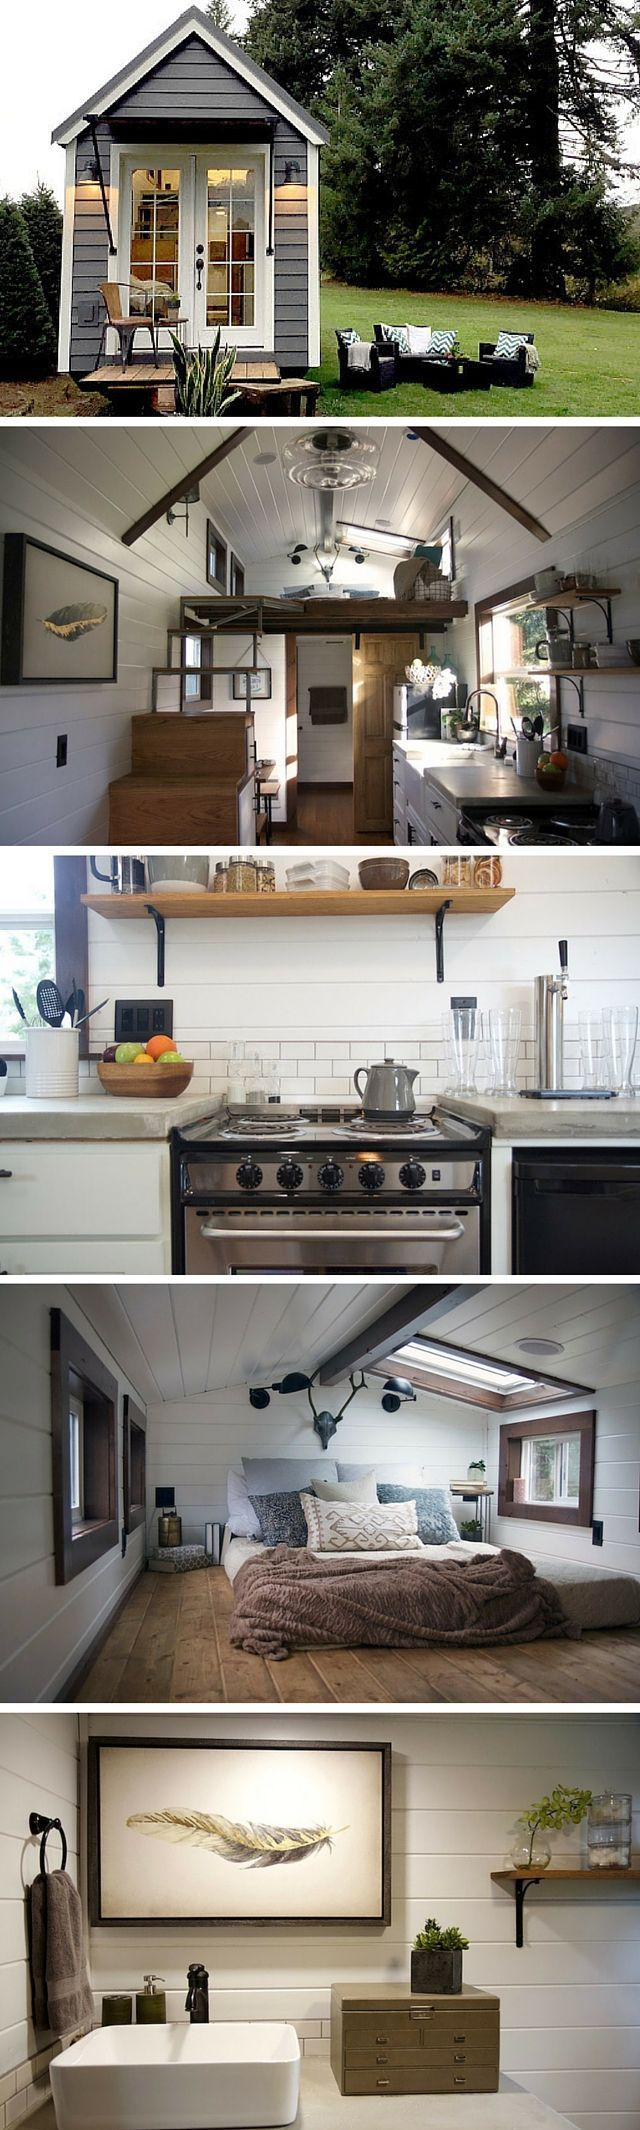 86 best Little houses images on Pinterest | Log cabins, Mountain ...